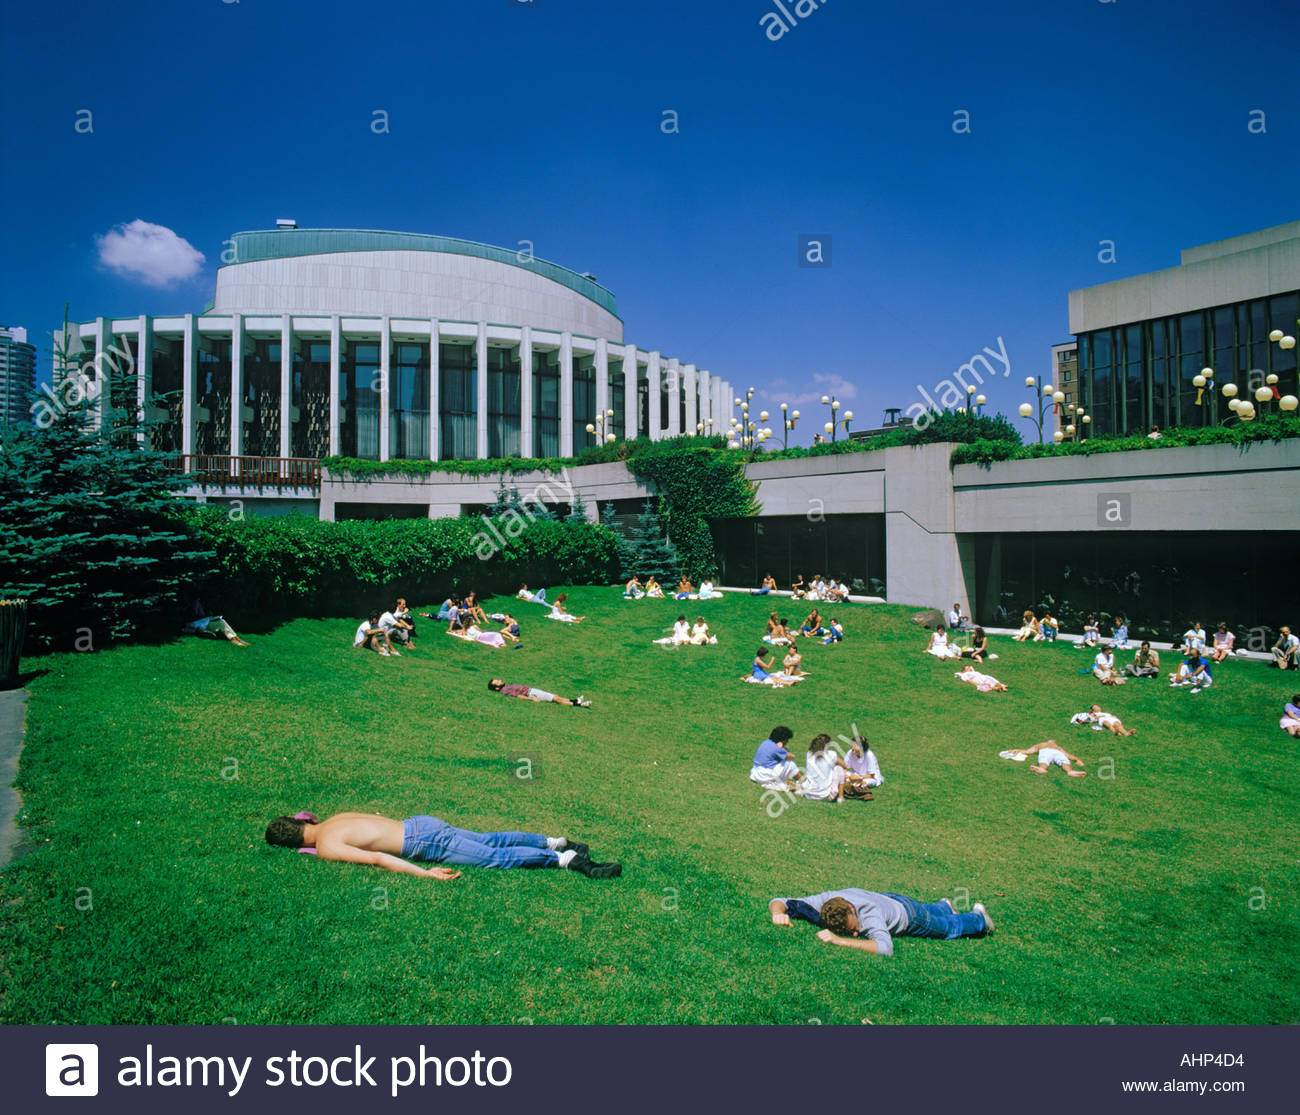 Lunchtime nap at Place Des Arts concert hall in Montreal Quebec Canada - Stock Image